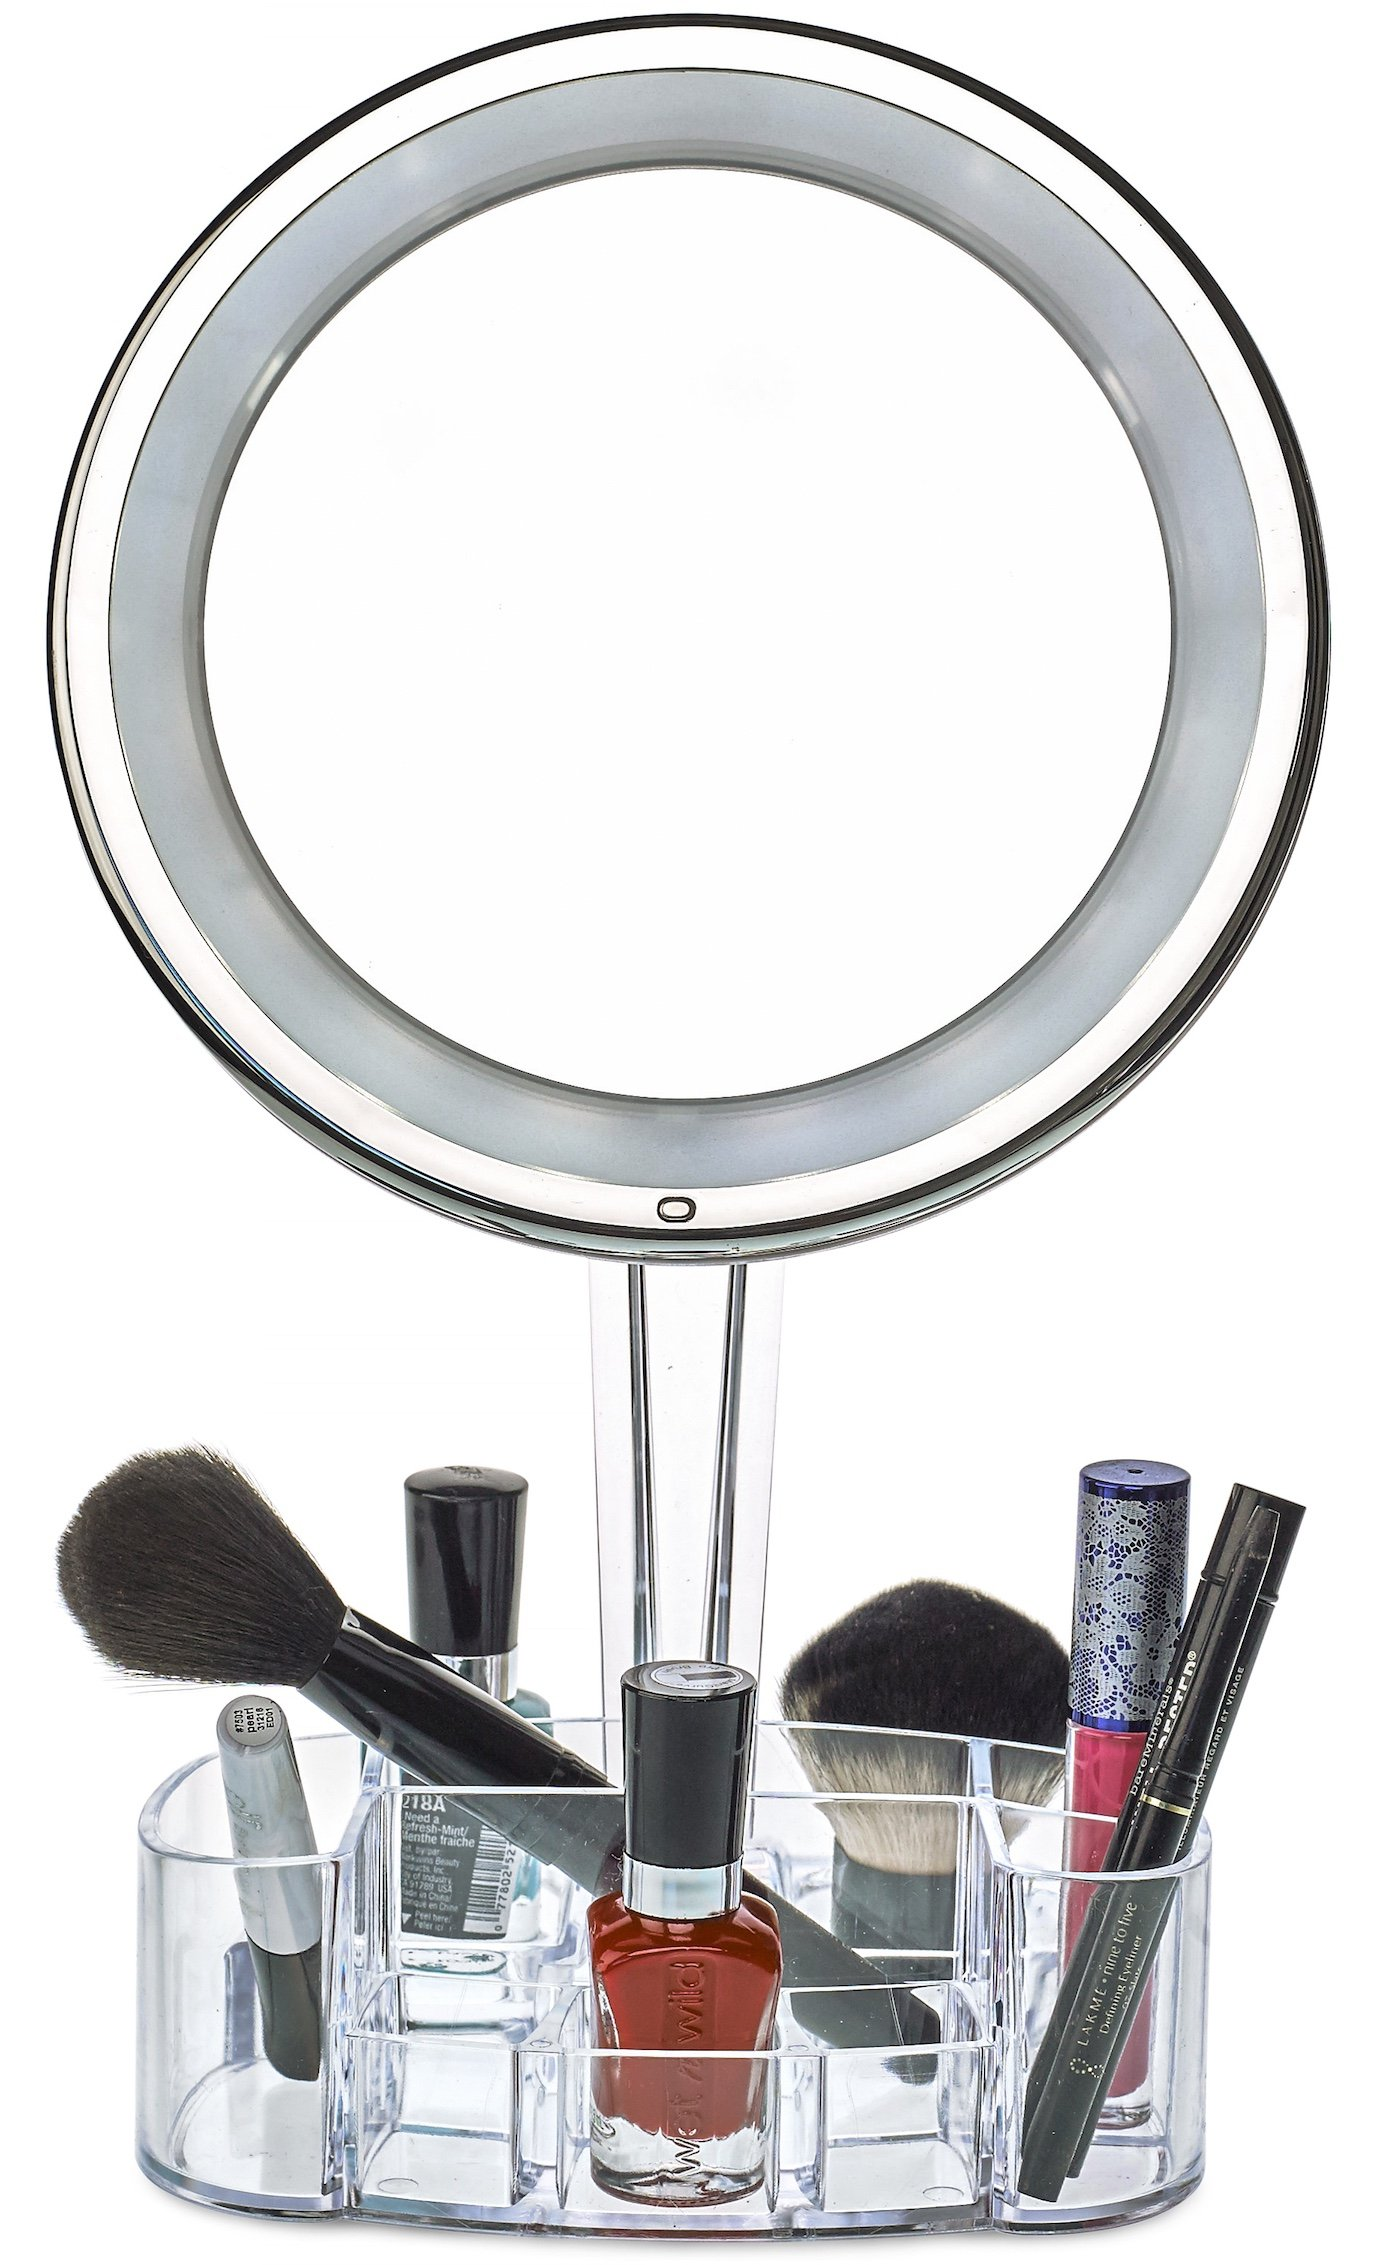 daisi Magnifying Lighted Makeup Mirror with Cosmetic Organizer Base | 7X Magnification, LED Lighted Free Standing Bathroom Mirror for Vanity, Desk or Tabletop